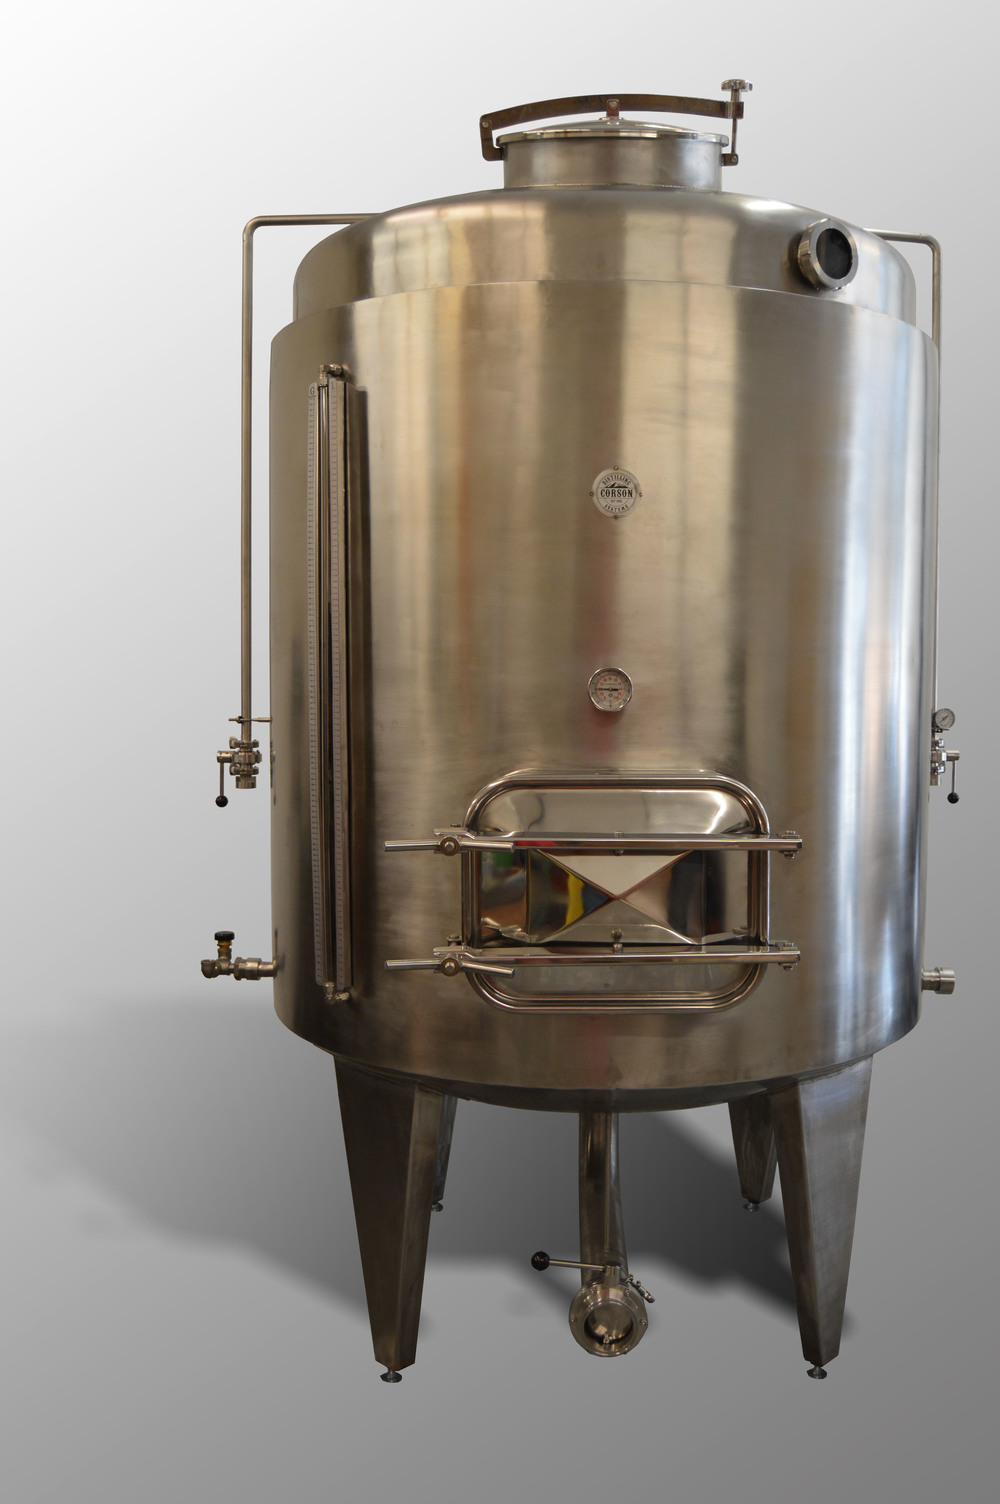 Steam-jacketed mash tun with cooling jackets and insulation